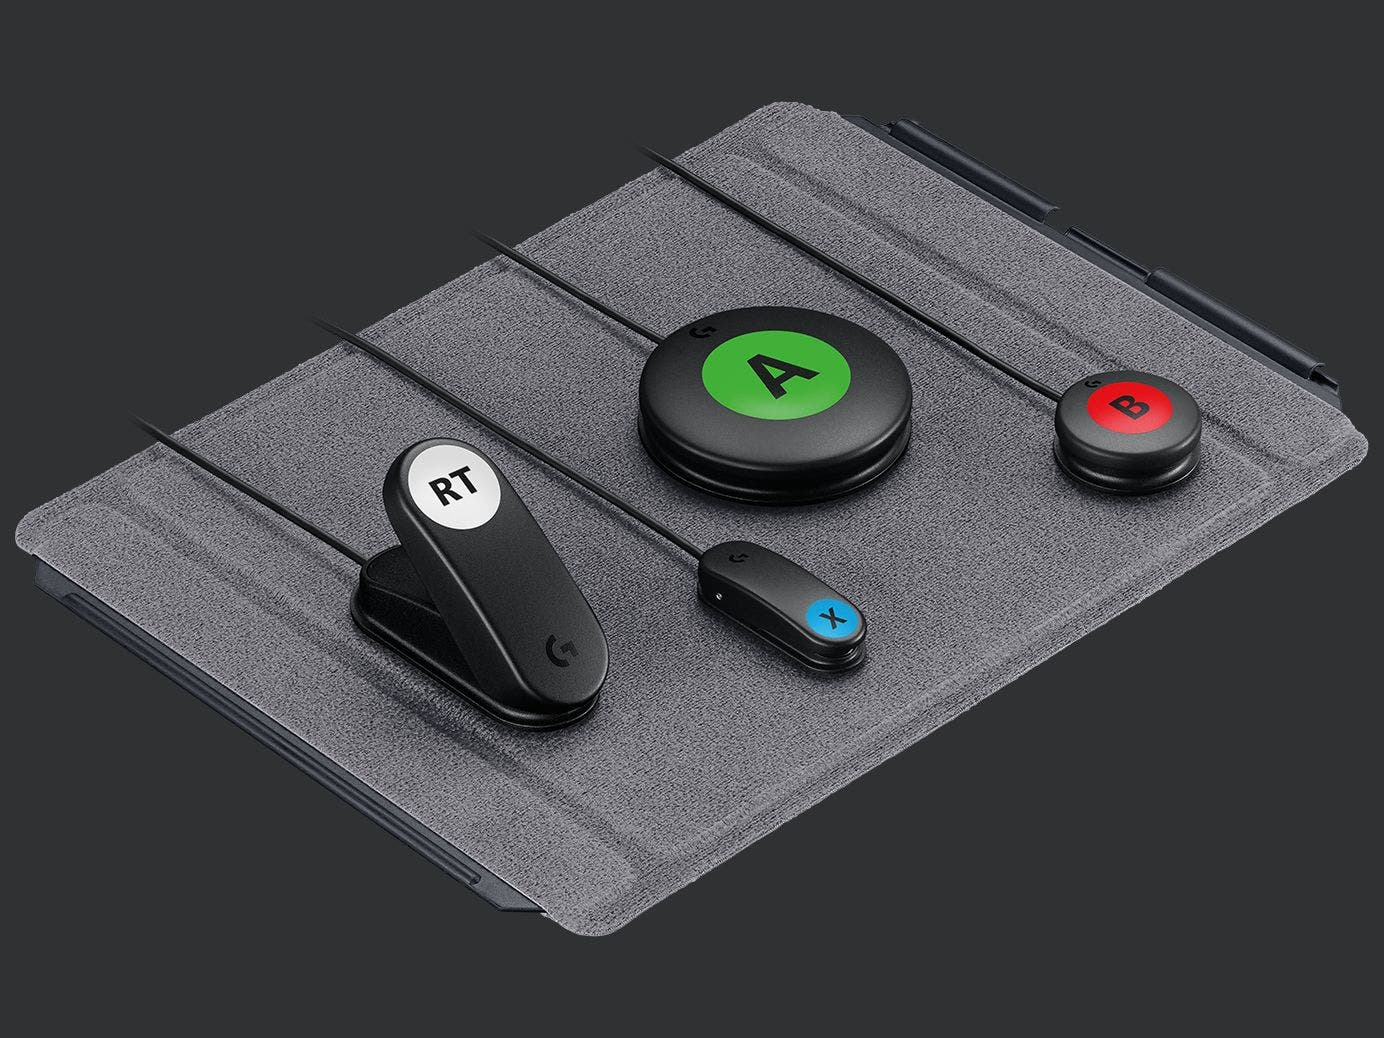 Adaptative Gaming Kit de Logitech para Xbox Adaptative Controller ya disponible 3